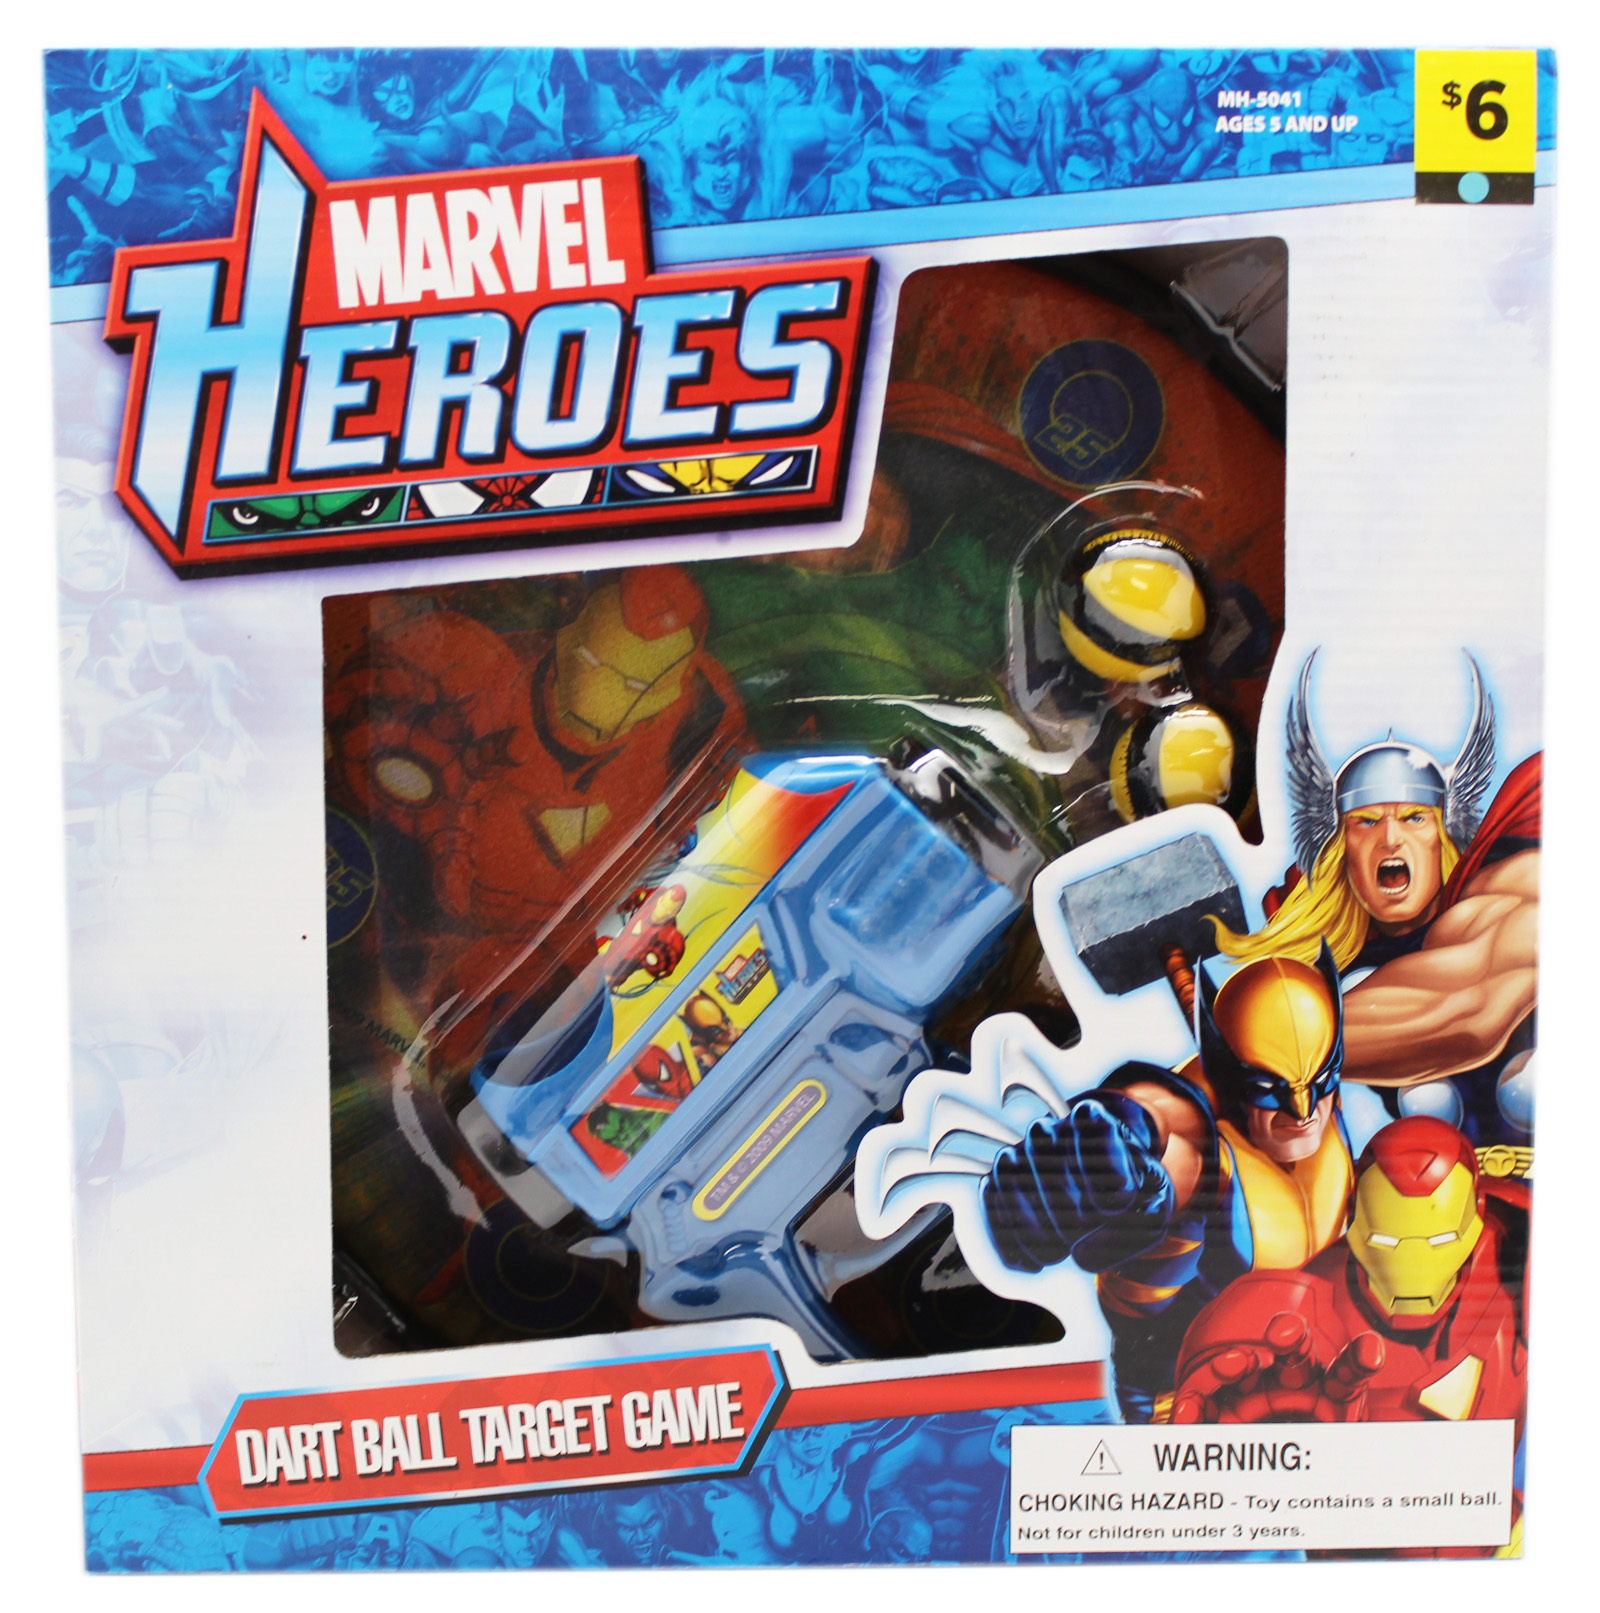 Marvel Heroes Dart Ball Target Game